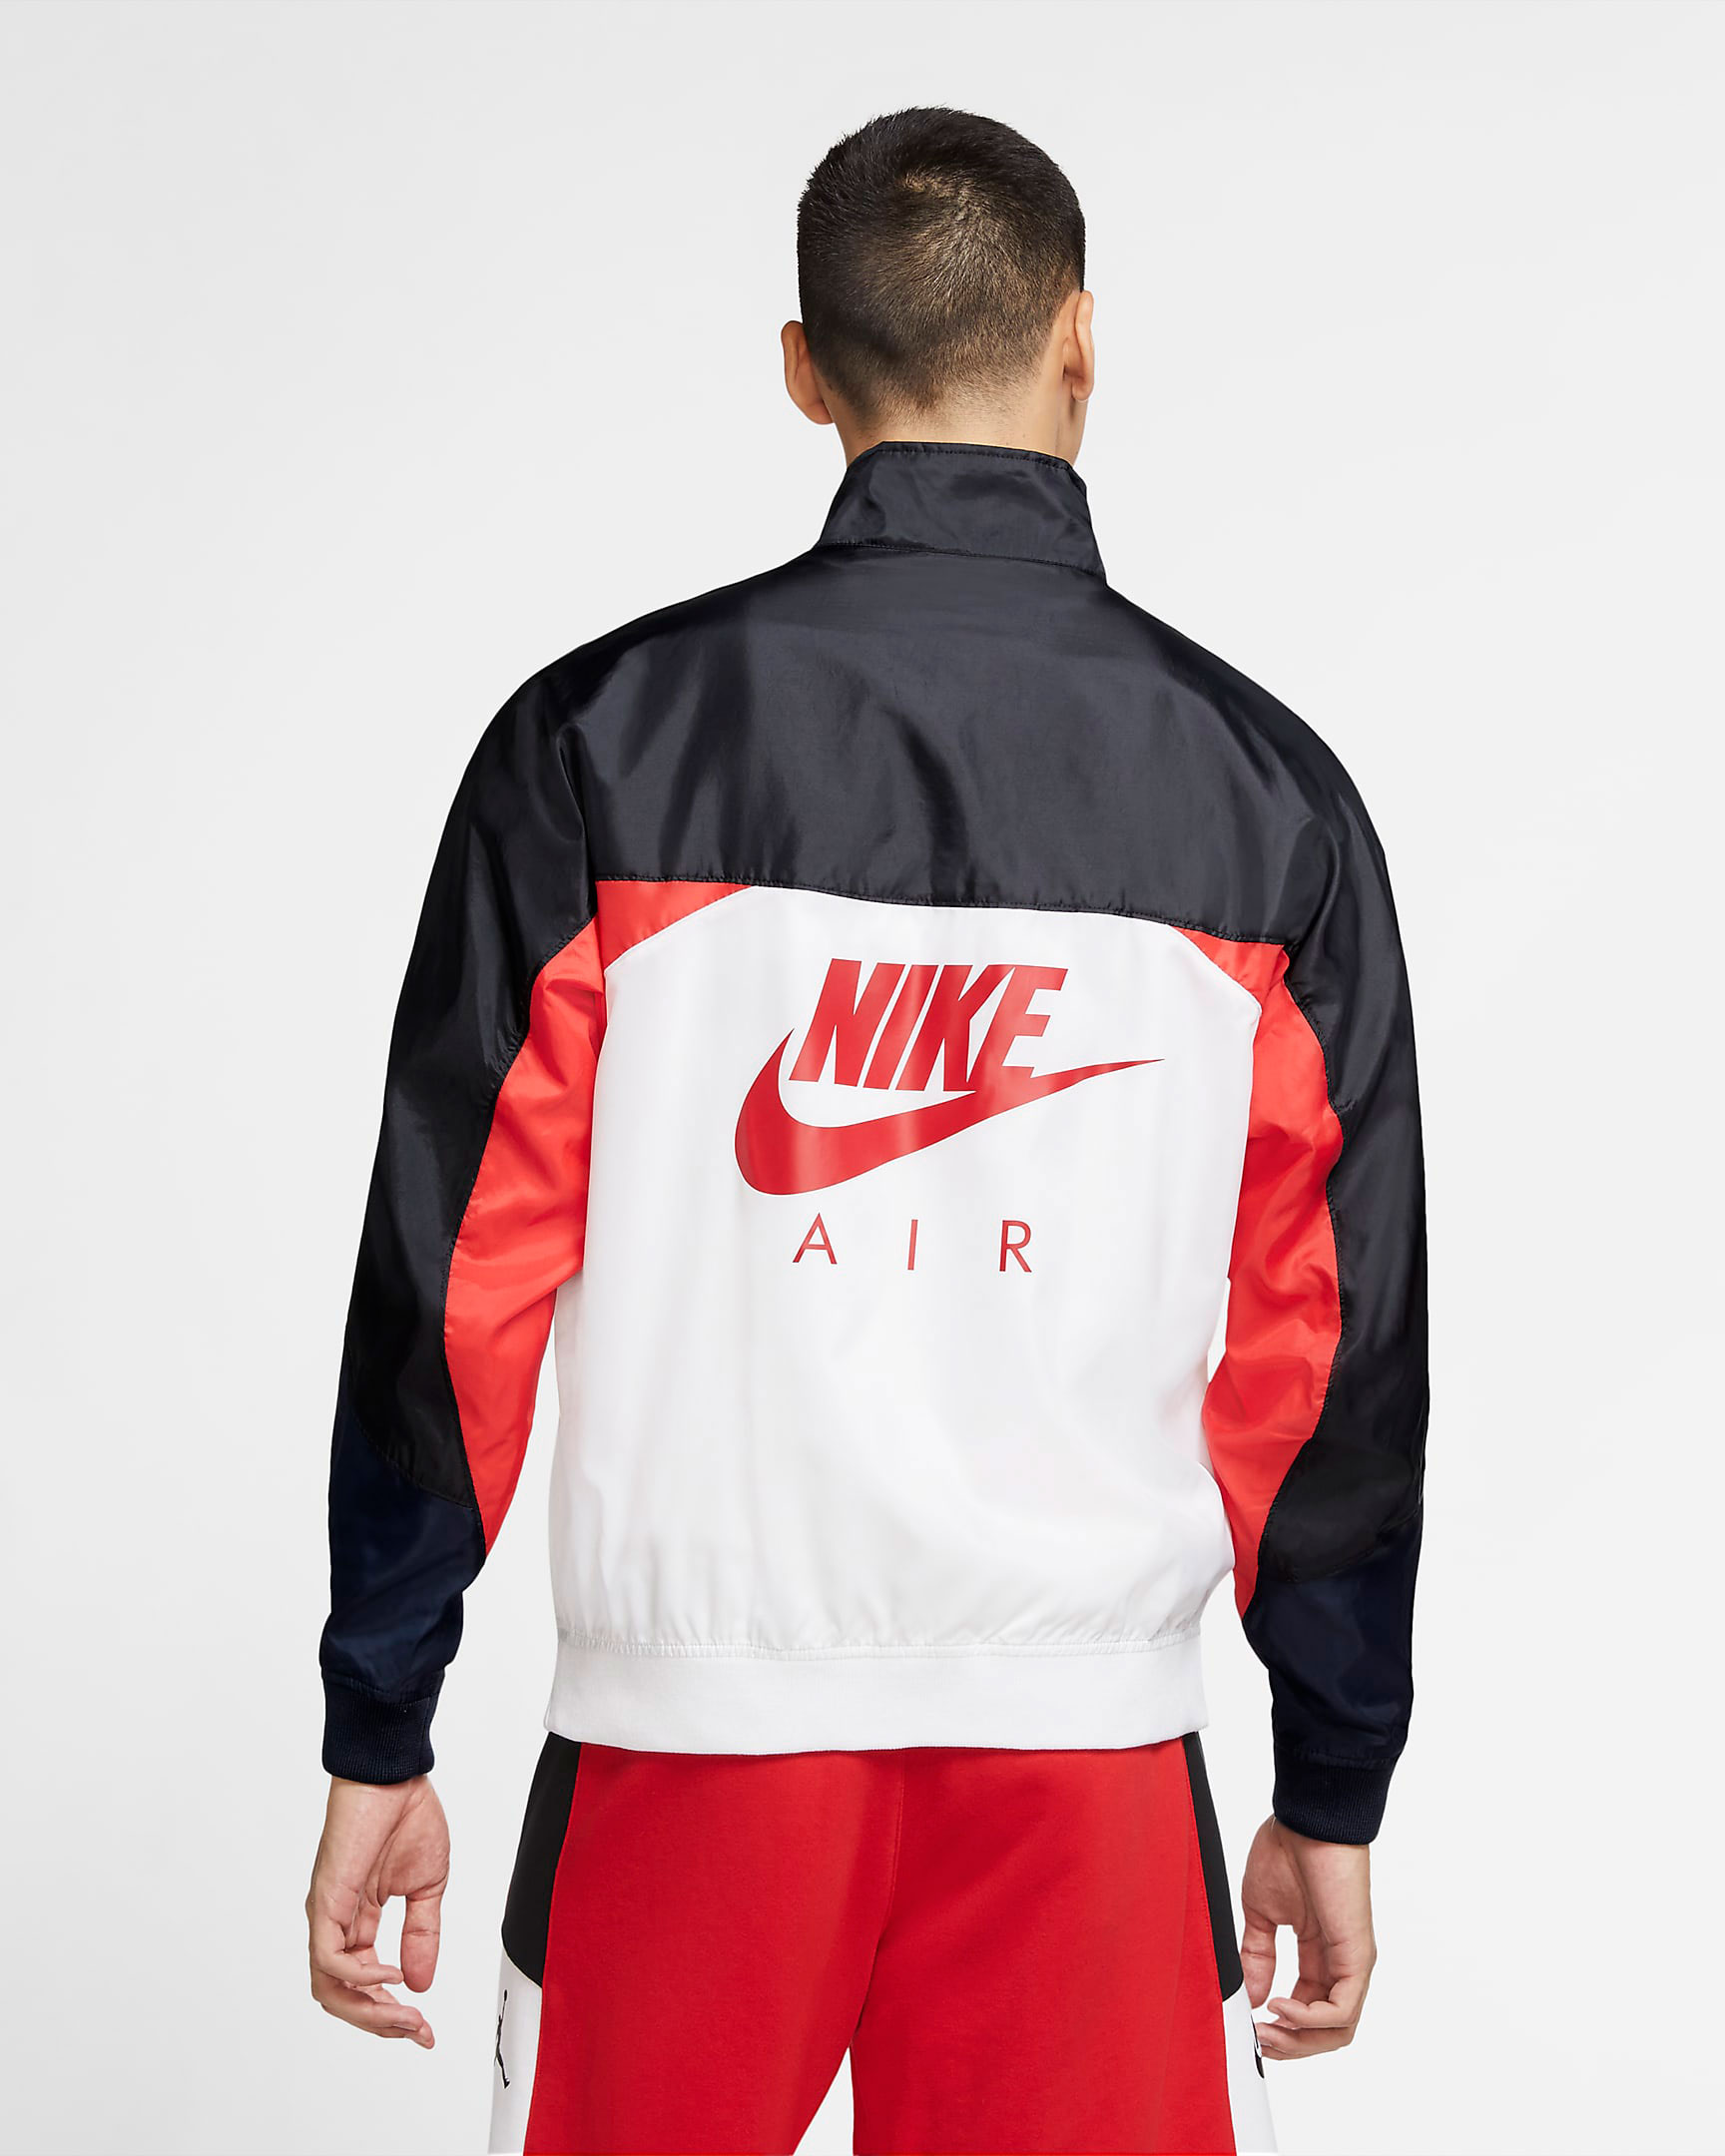 fire-red-air-jordan-4-jacket-match-2